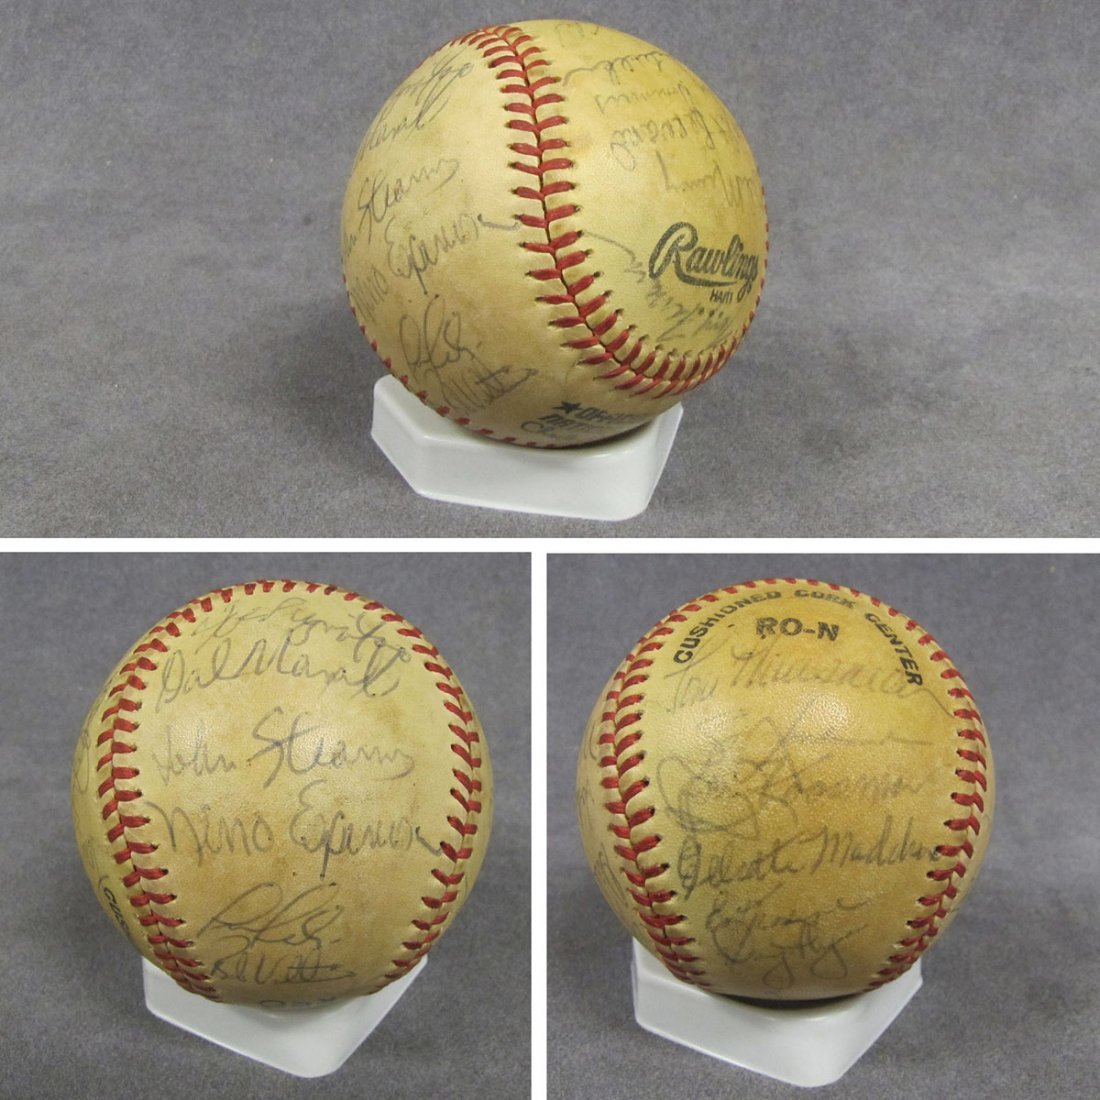 13: OFFICIAL NATIONAL LEAGUE SIGNED BASEBALL